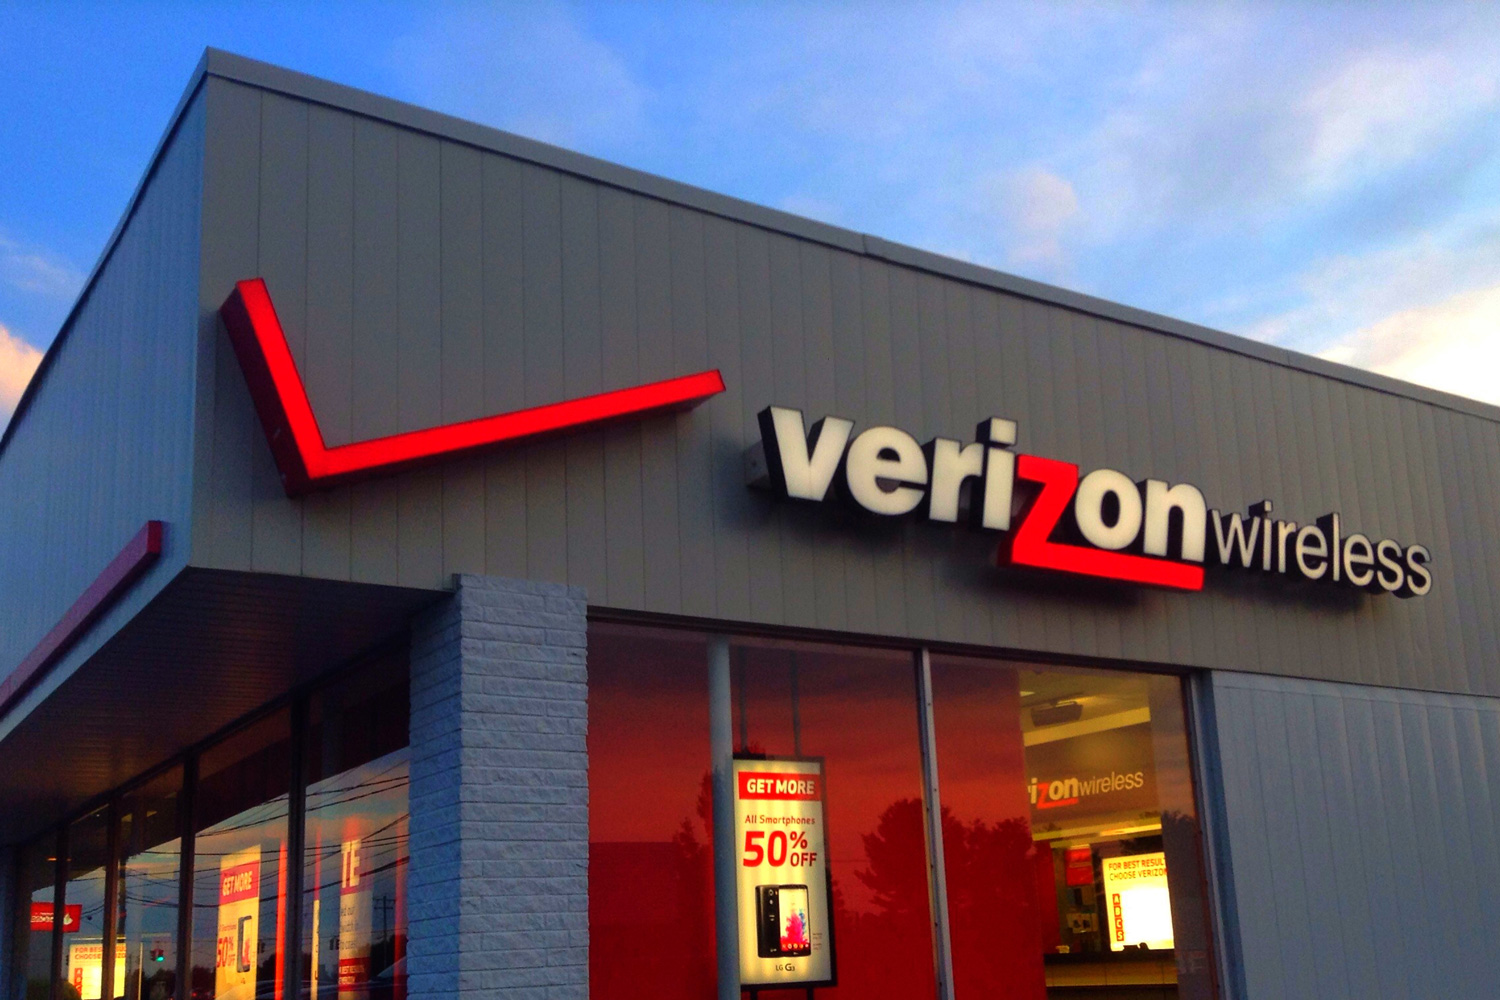 Find your closest Verizon retailer to get your hands on the latest smartphones and devices. In a hurry? Order online and pick up in store. View store hours, directions and contact info for your local retailer.